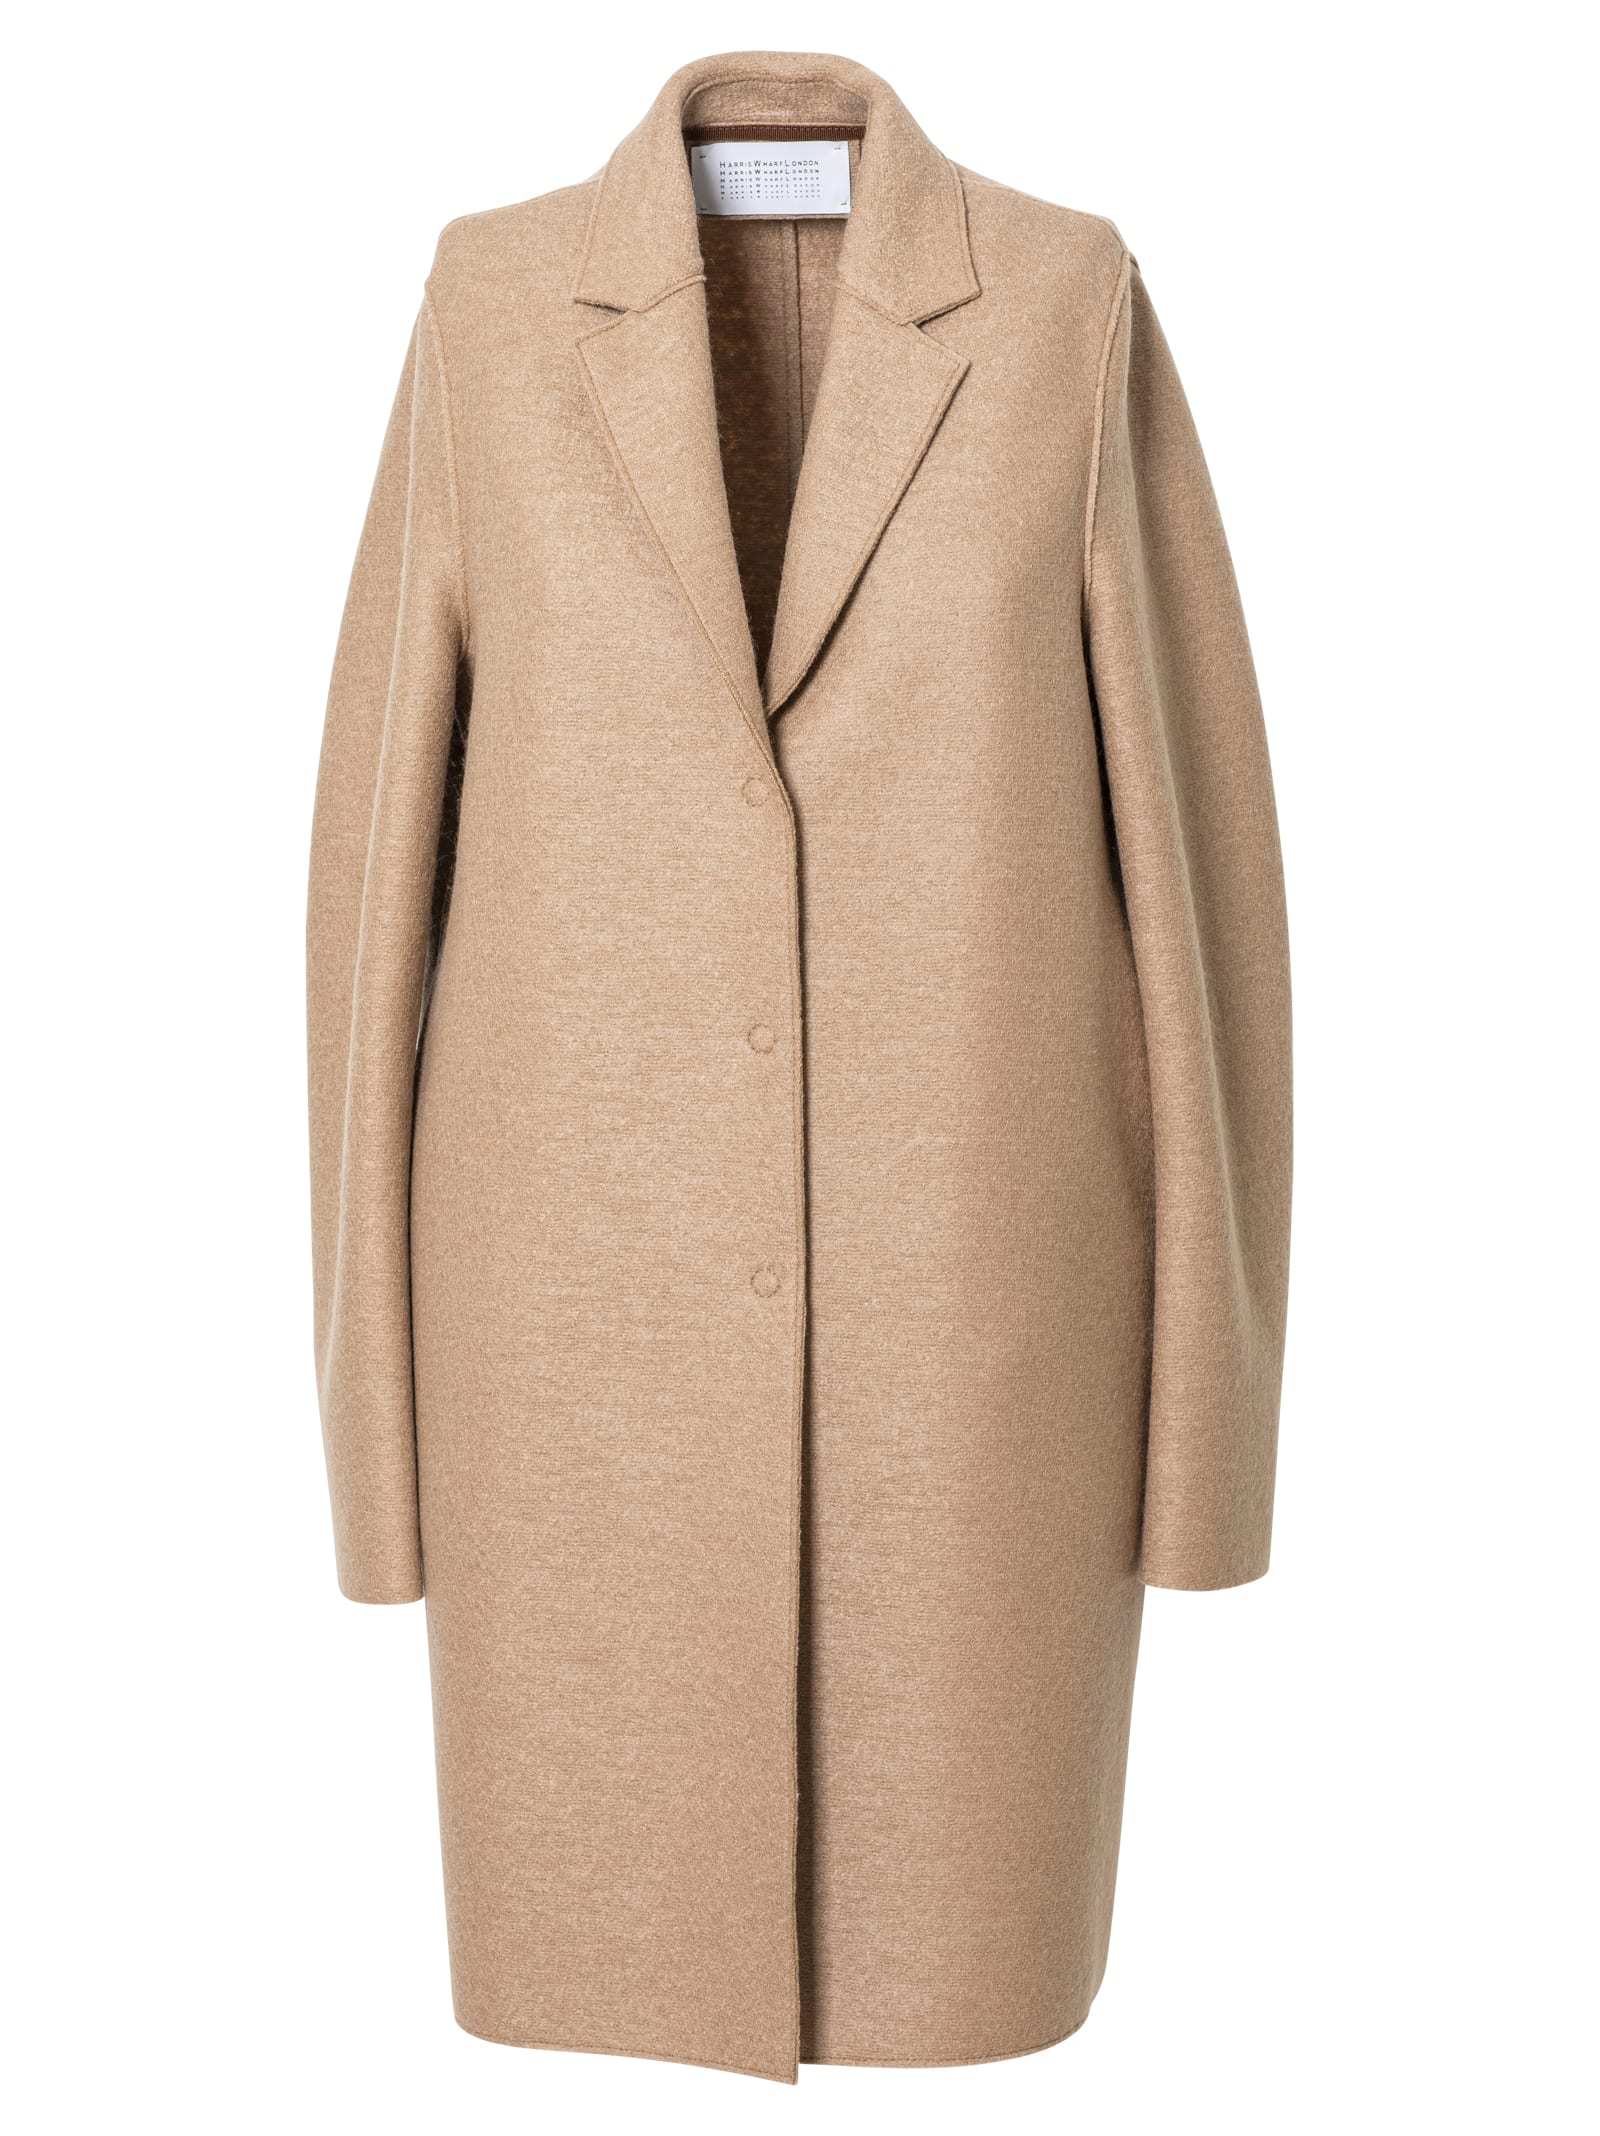 Harris Wharf London Cappotto